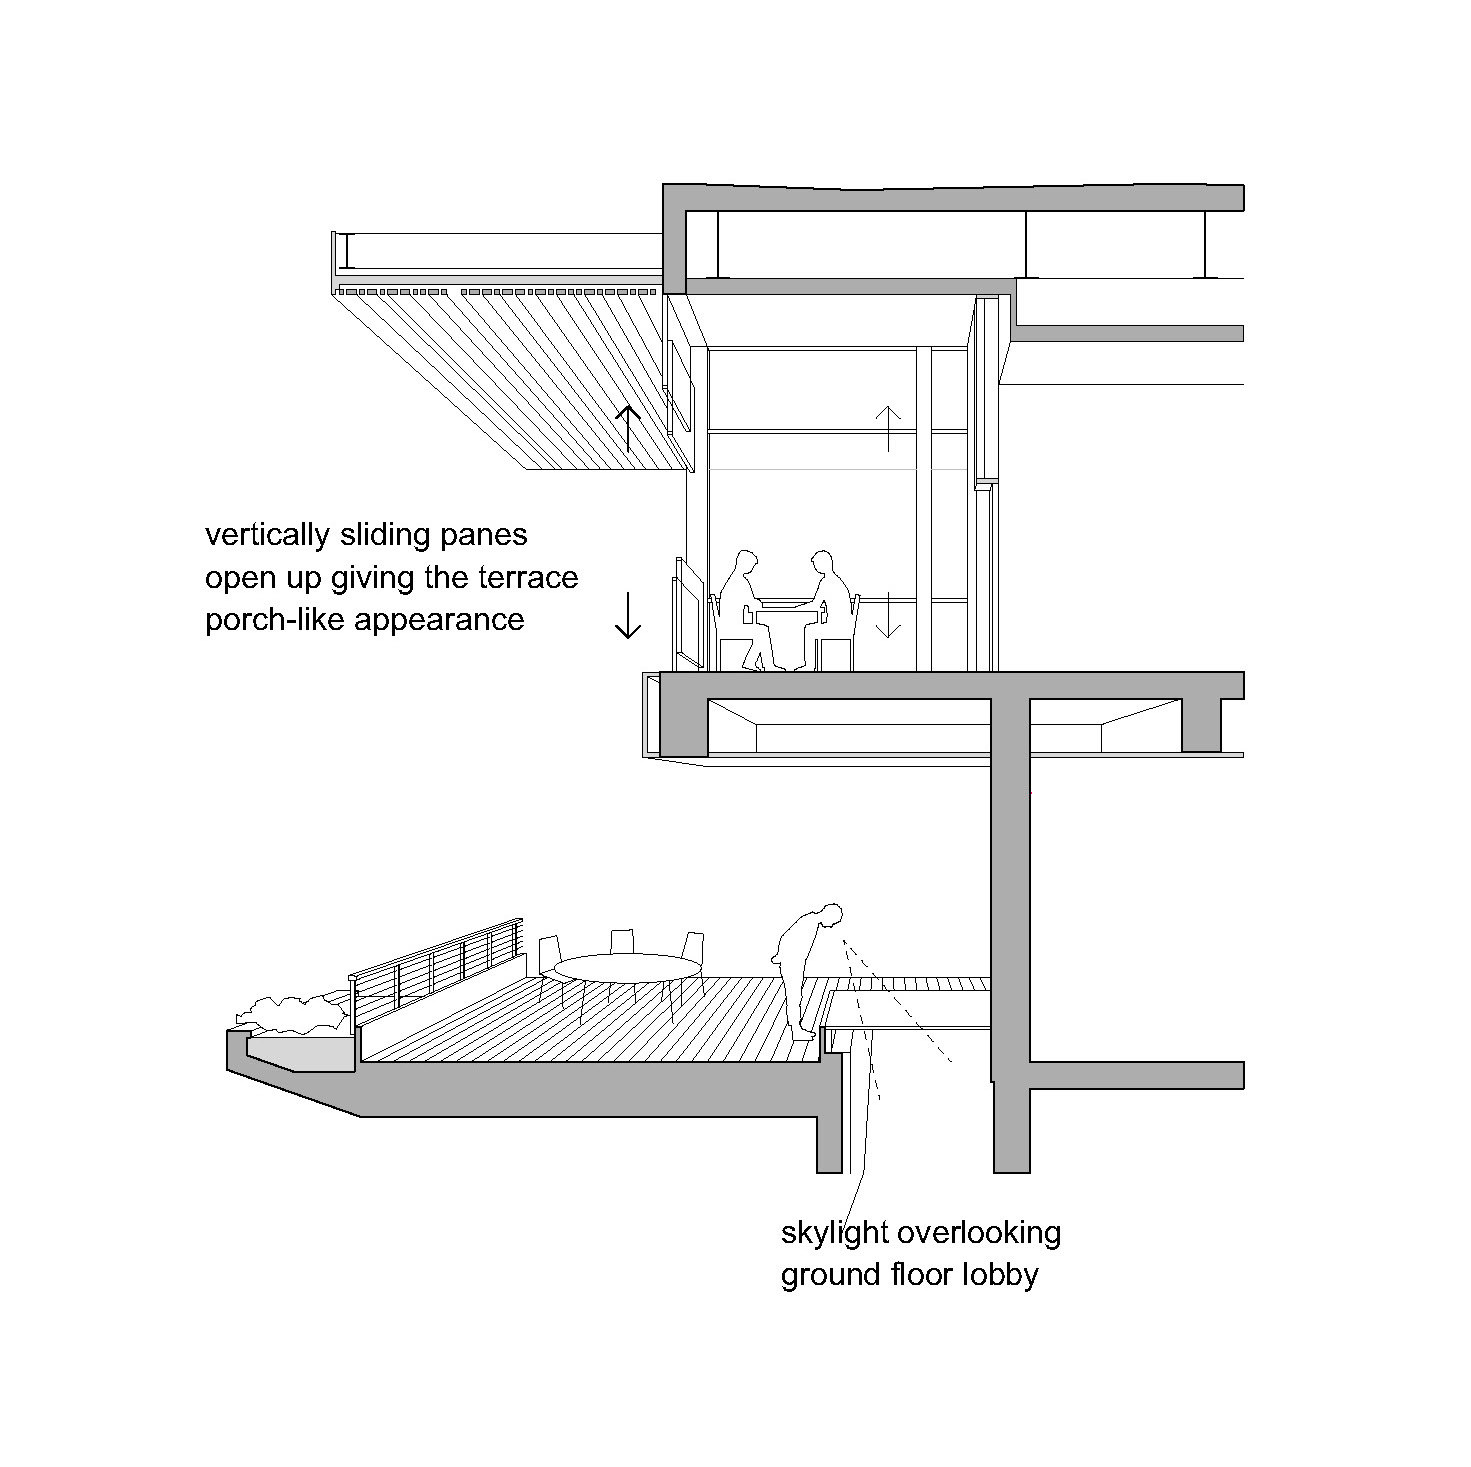 m14 _3LHD_202_GPHR_perspective_restaurant_terraces.jpg